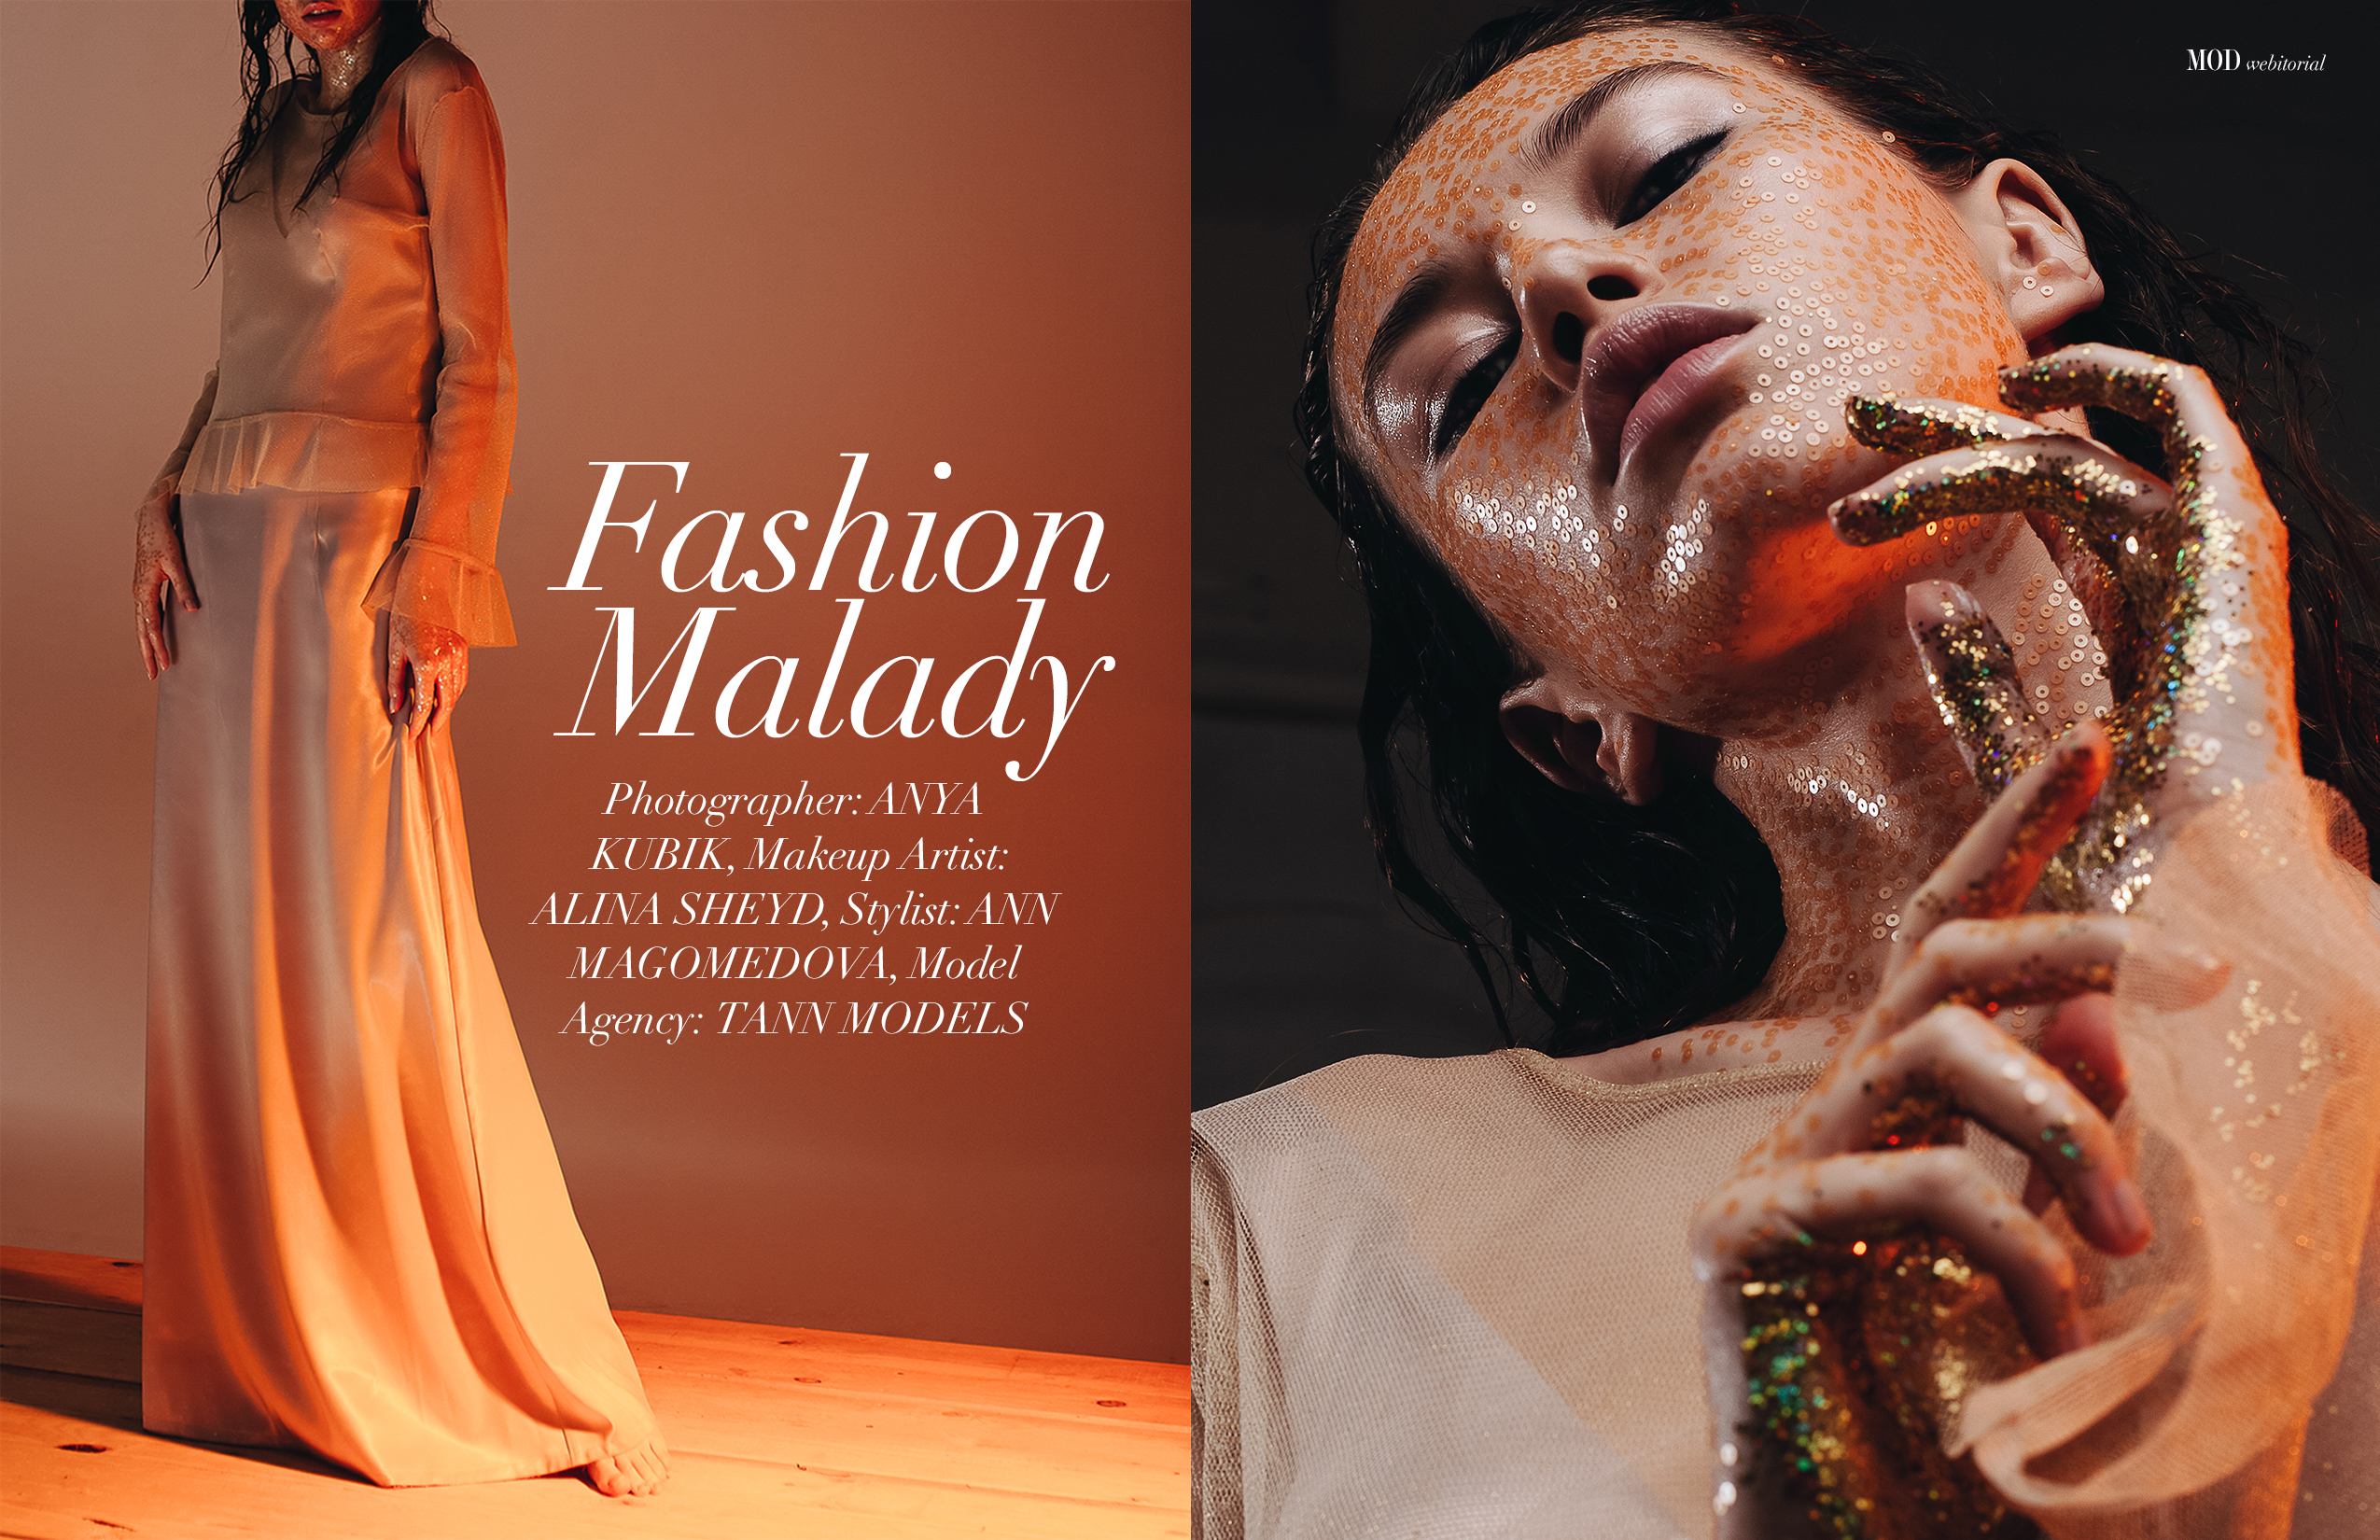 mod magazine webitorial fashion malady by anya kubik